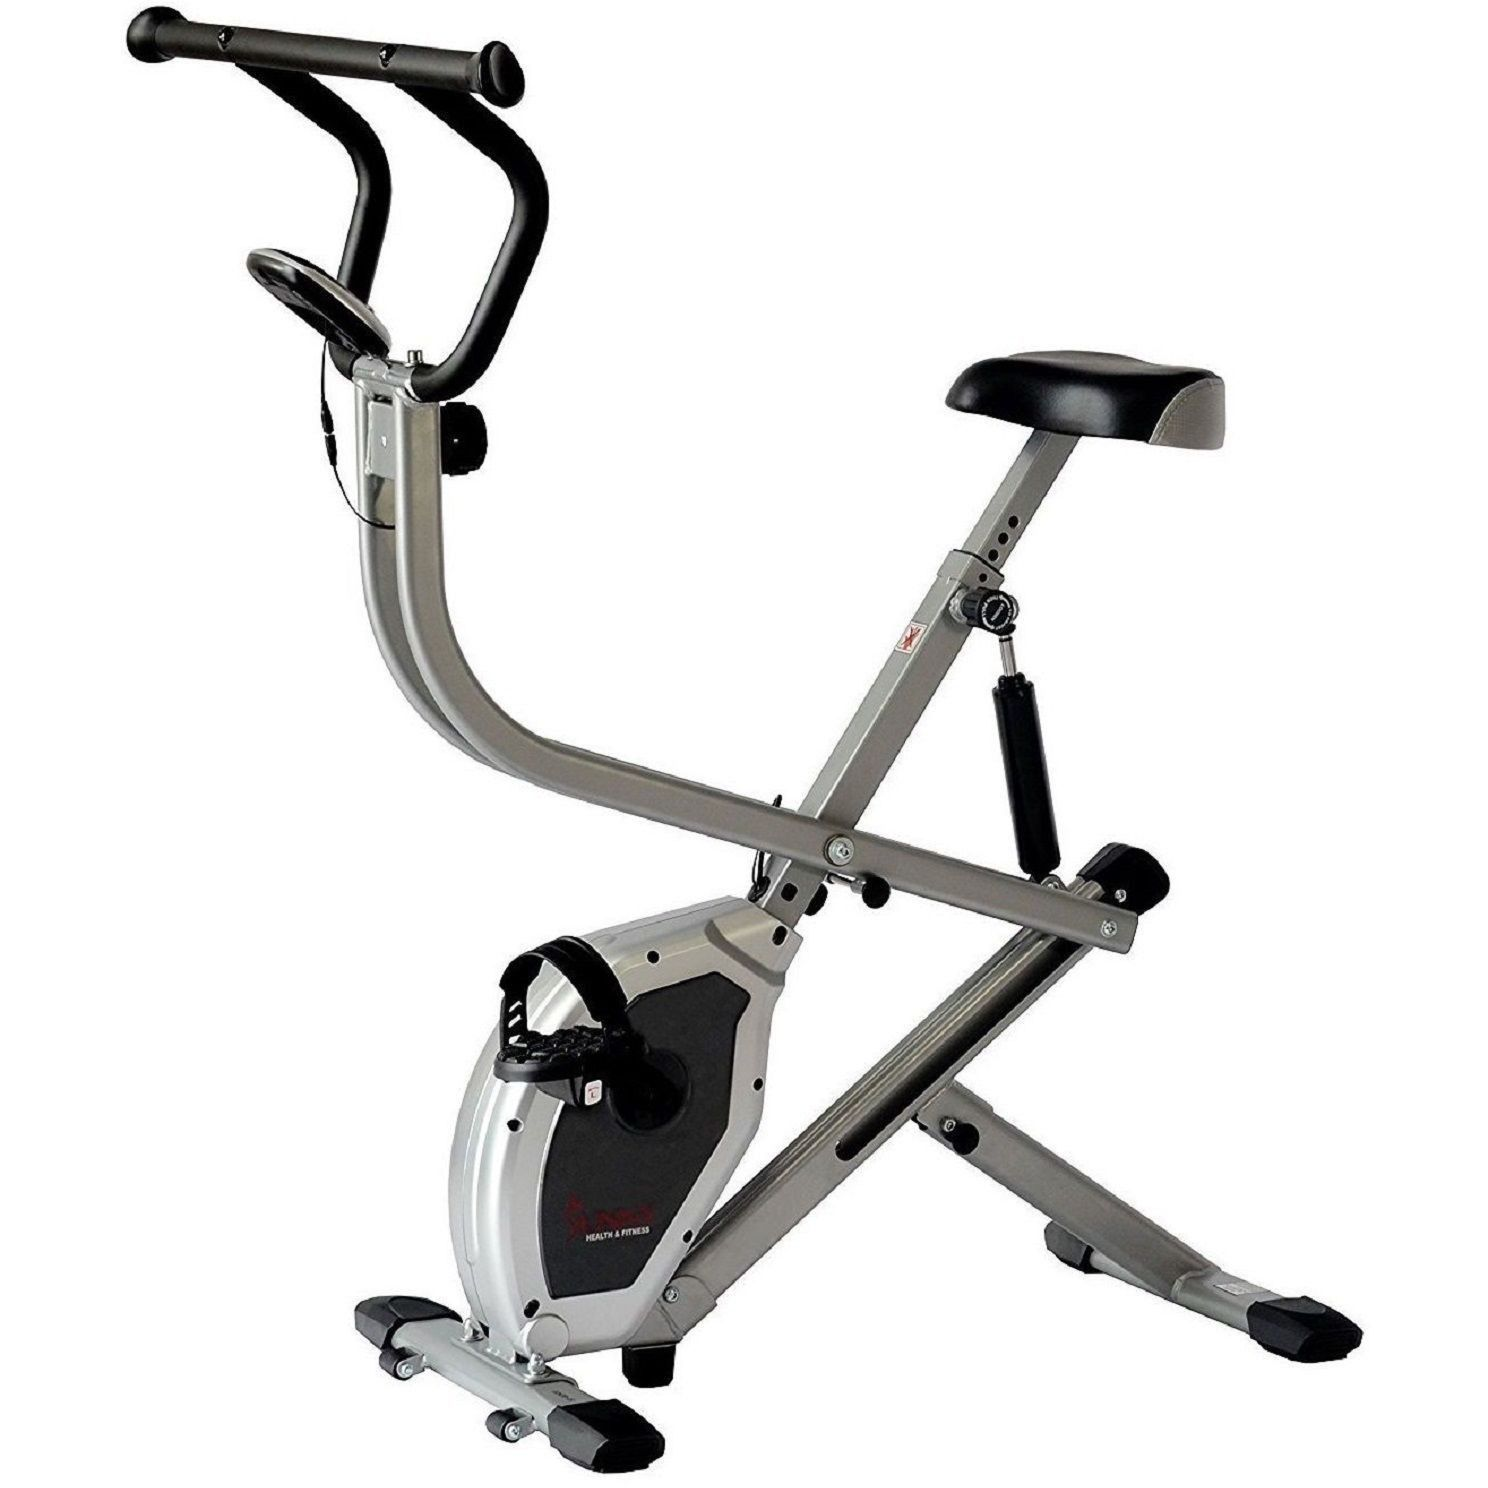 Sunny Dual Action Rider Stationary Cycling Upright Row Full Body Exercise Bike 1 Each Biking Workout Upright Exercise Bike Stationary Bikes